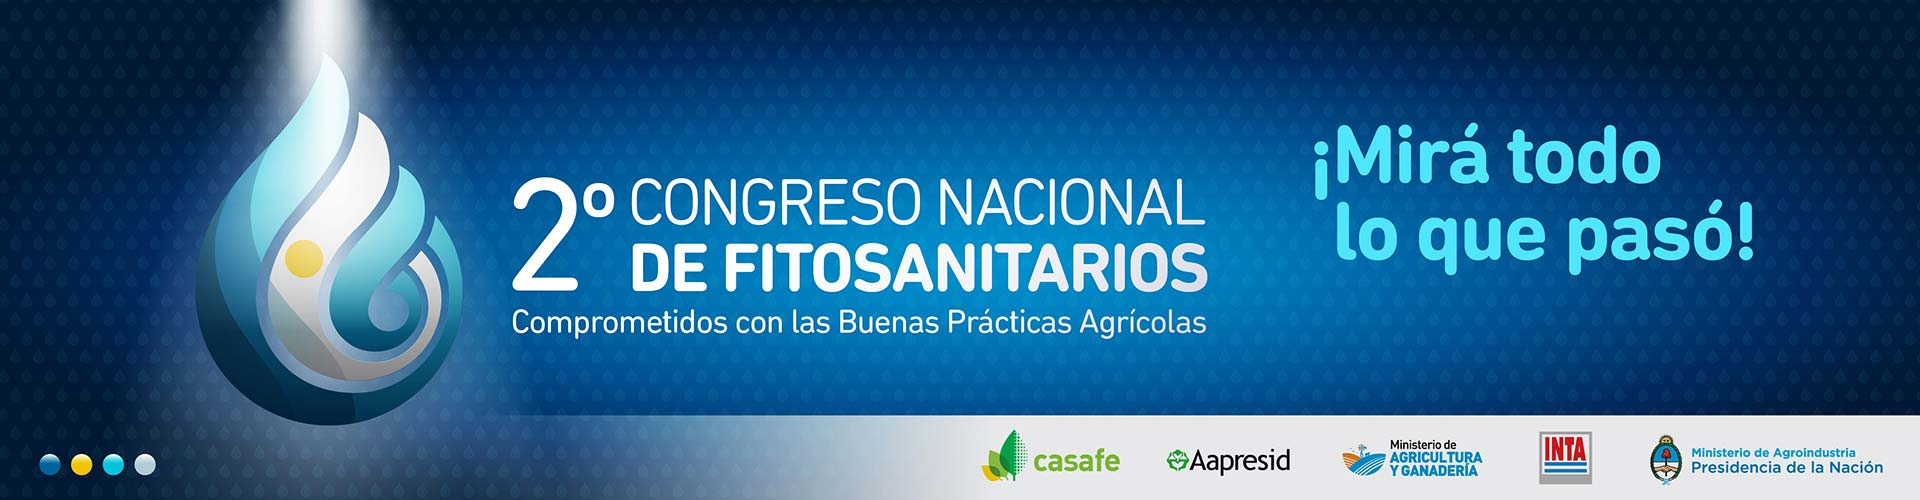 Background Slider Congreso Fitosanitarios.